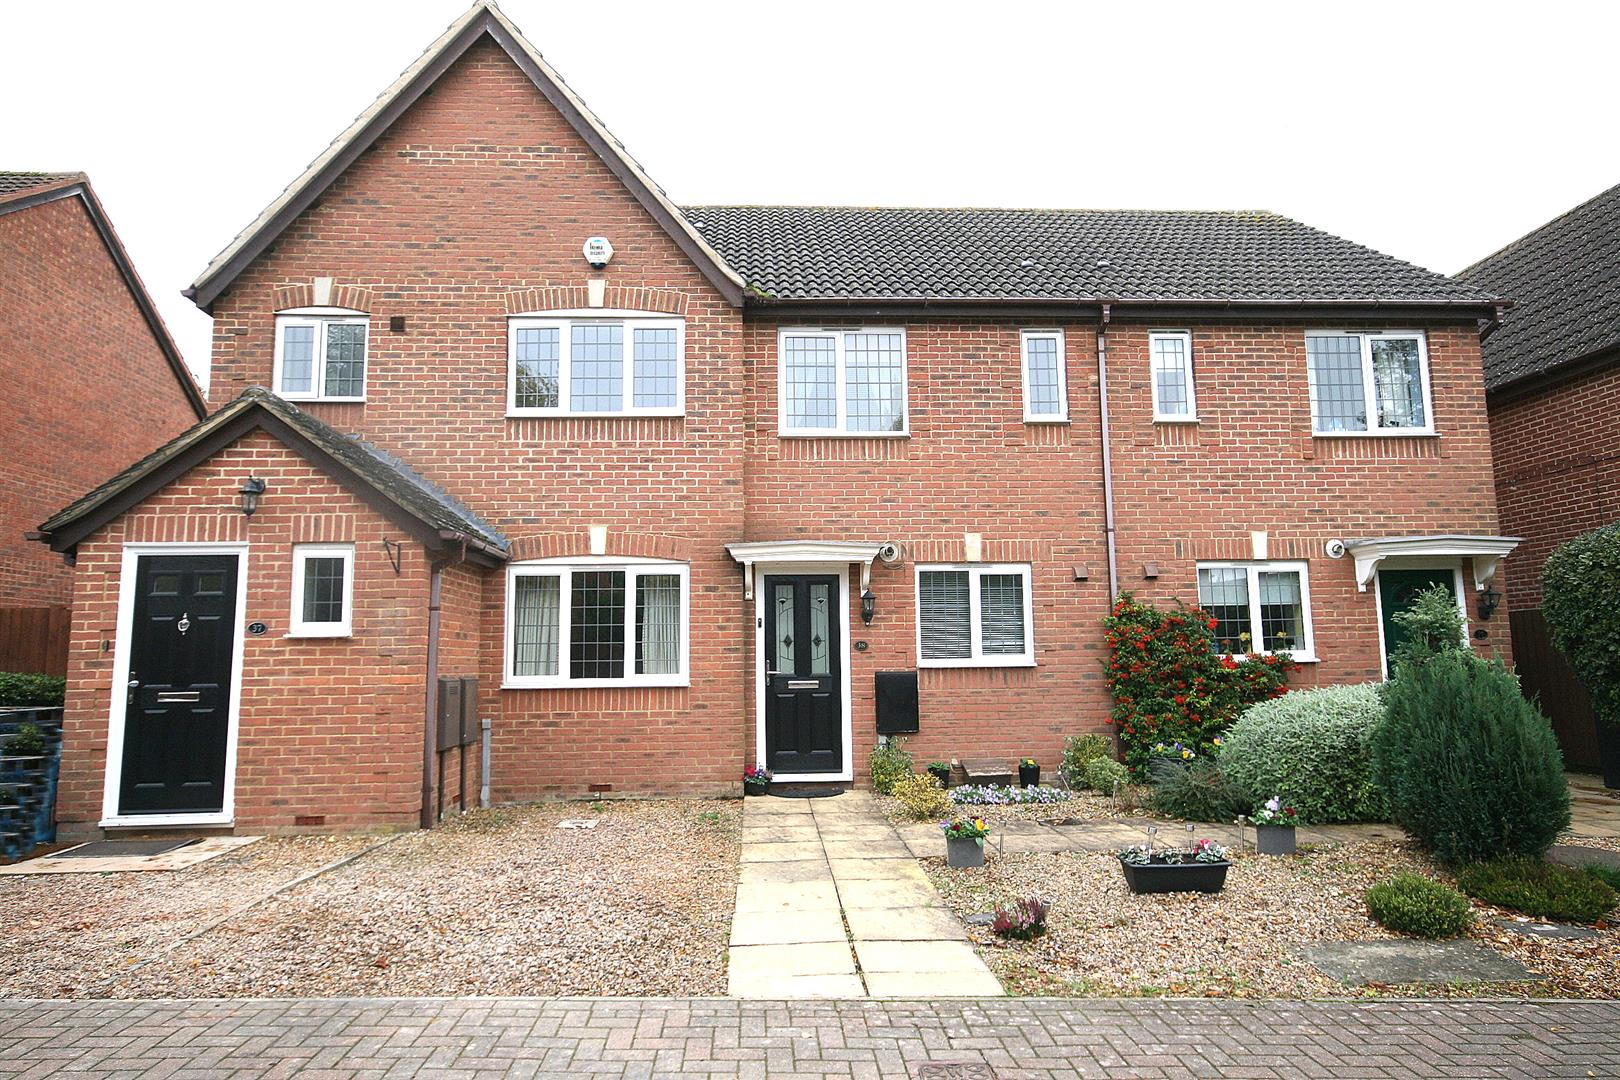 2 Bedrooms Terraced House for sale in Badgers Gate, Dunstable, Beds